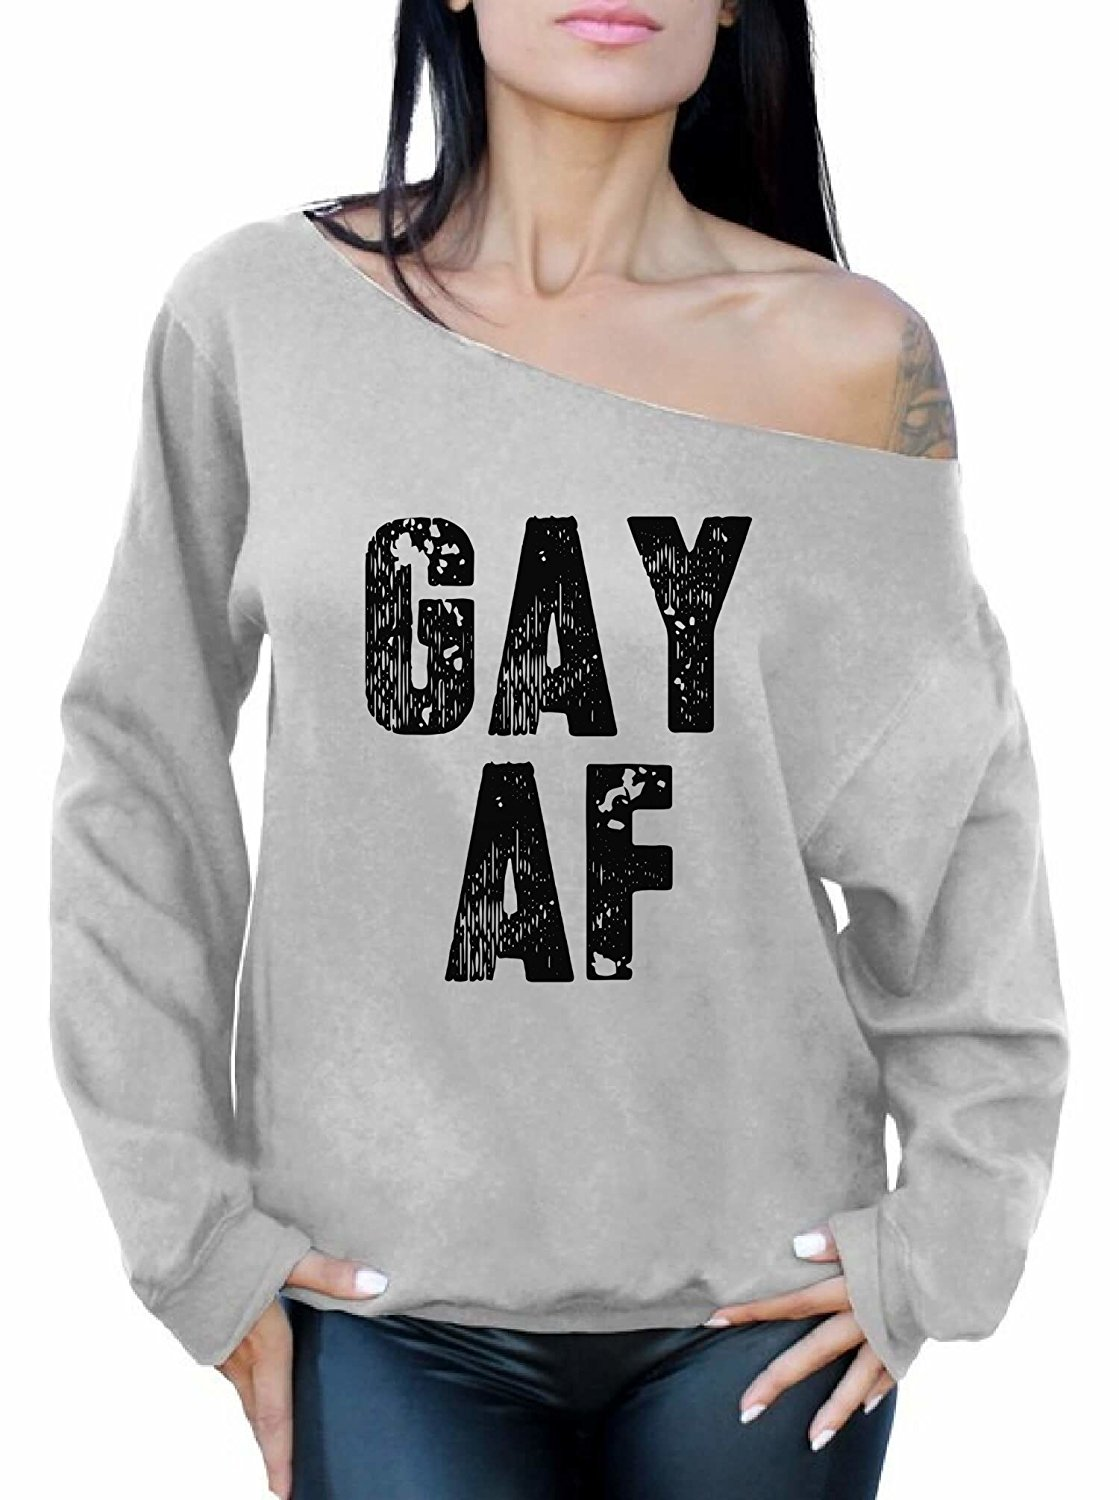 Find gay tops